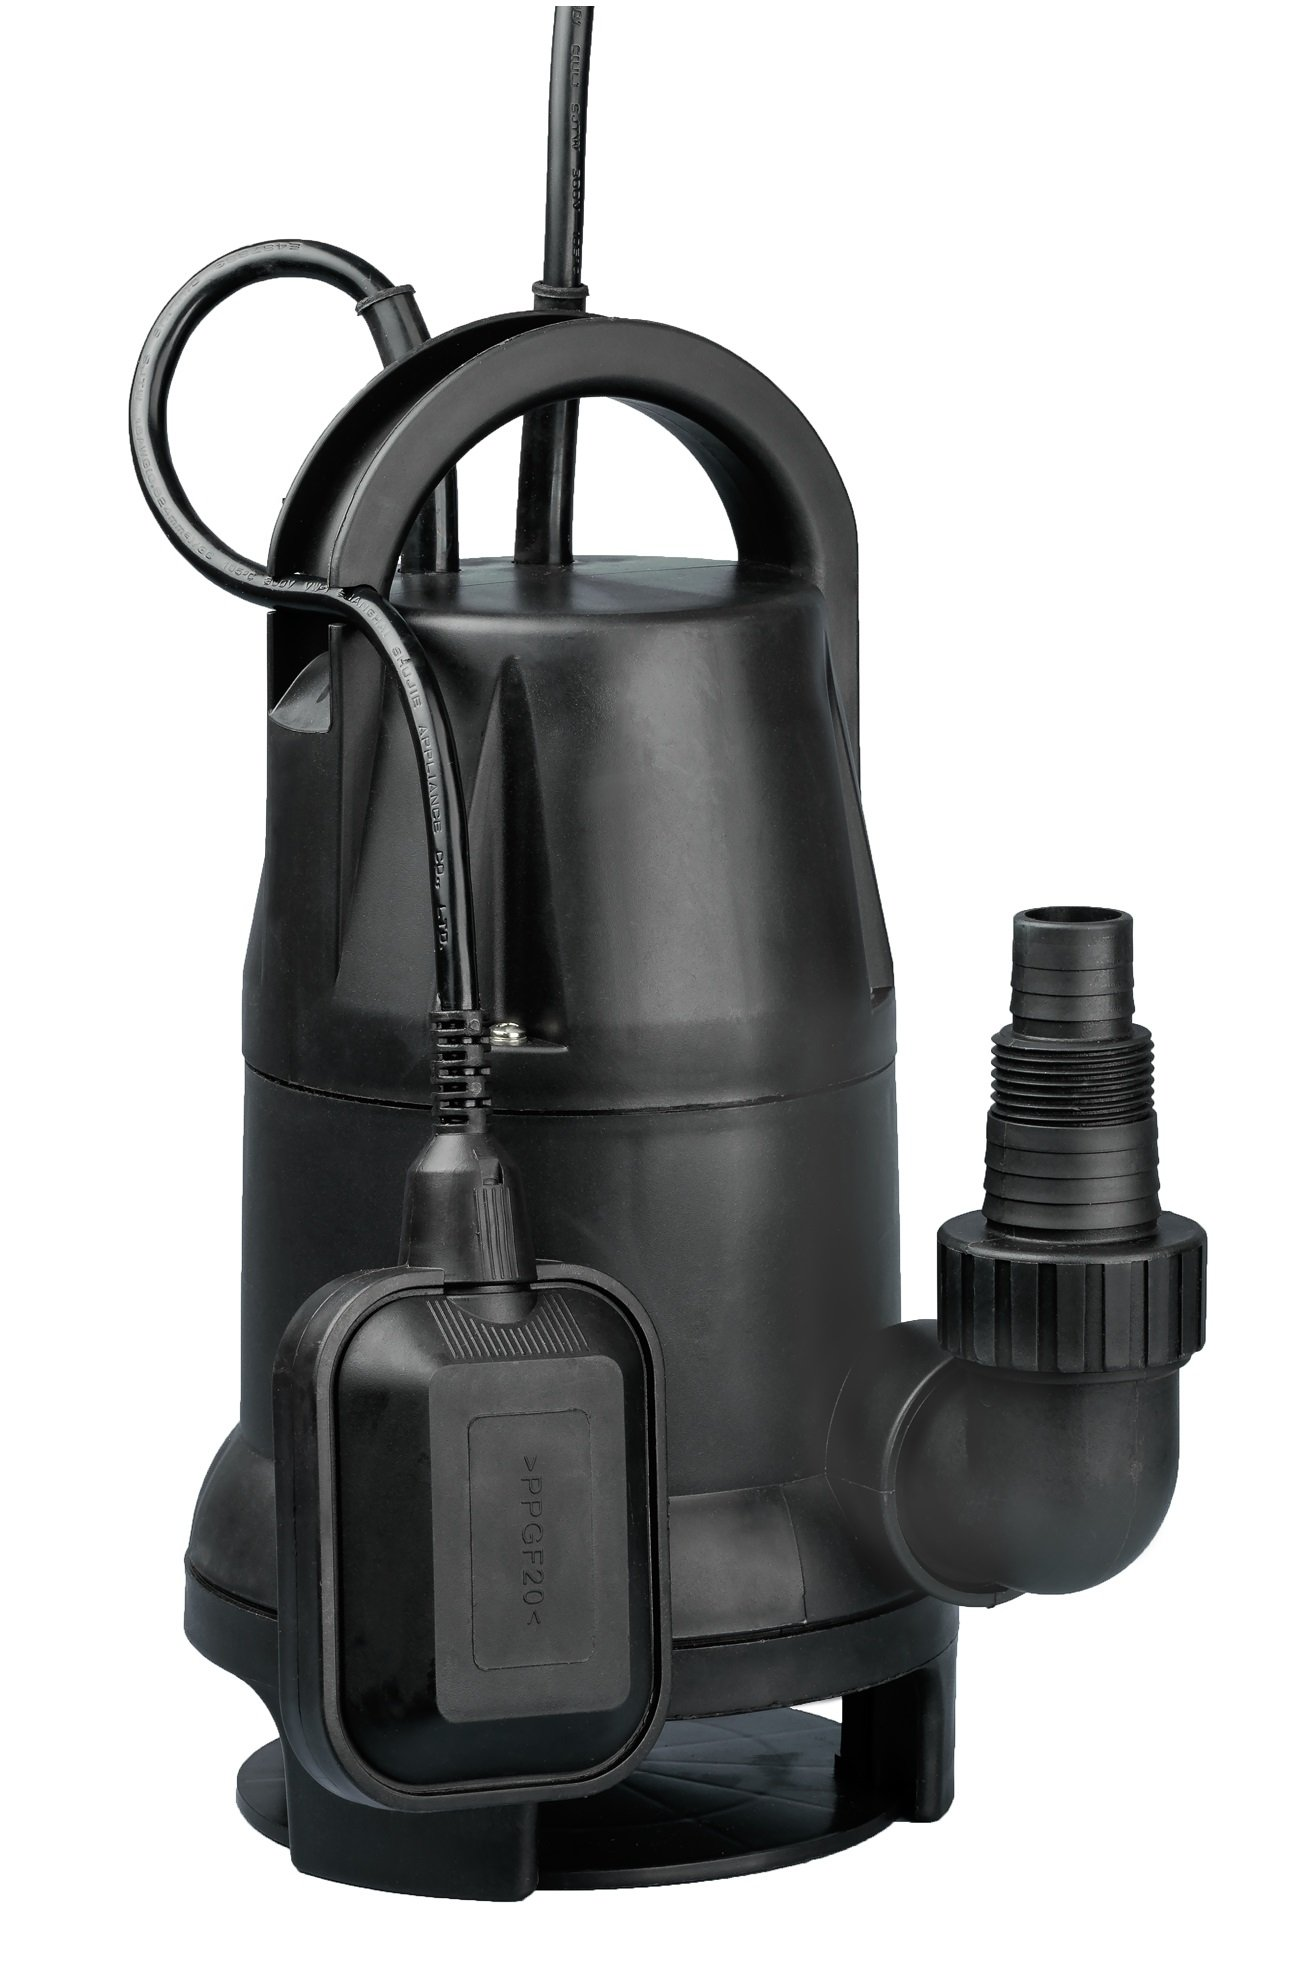 Fpower 1/2 HP 1980GPH Thermoplastic Submersible Utility Pump Clean/Dirty Water Sump Pump With Automatic ON/OFF Float Switch for Fountain, Pond, Pool, Aquarium, Cisterns